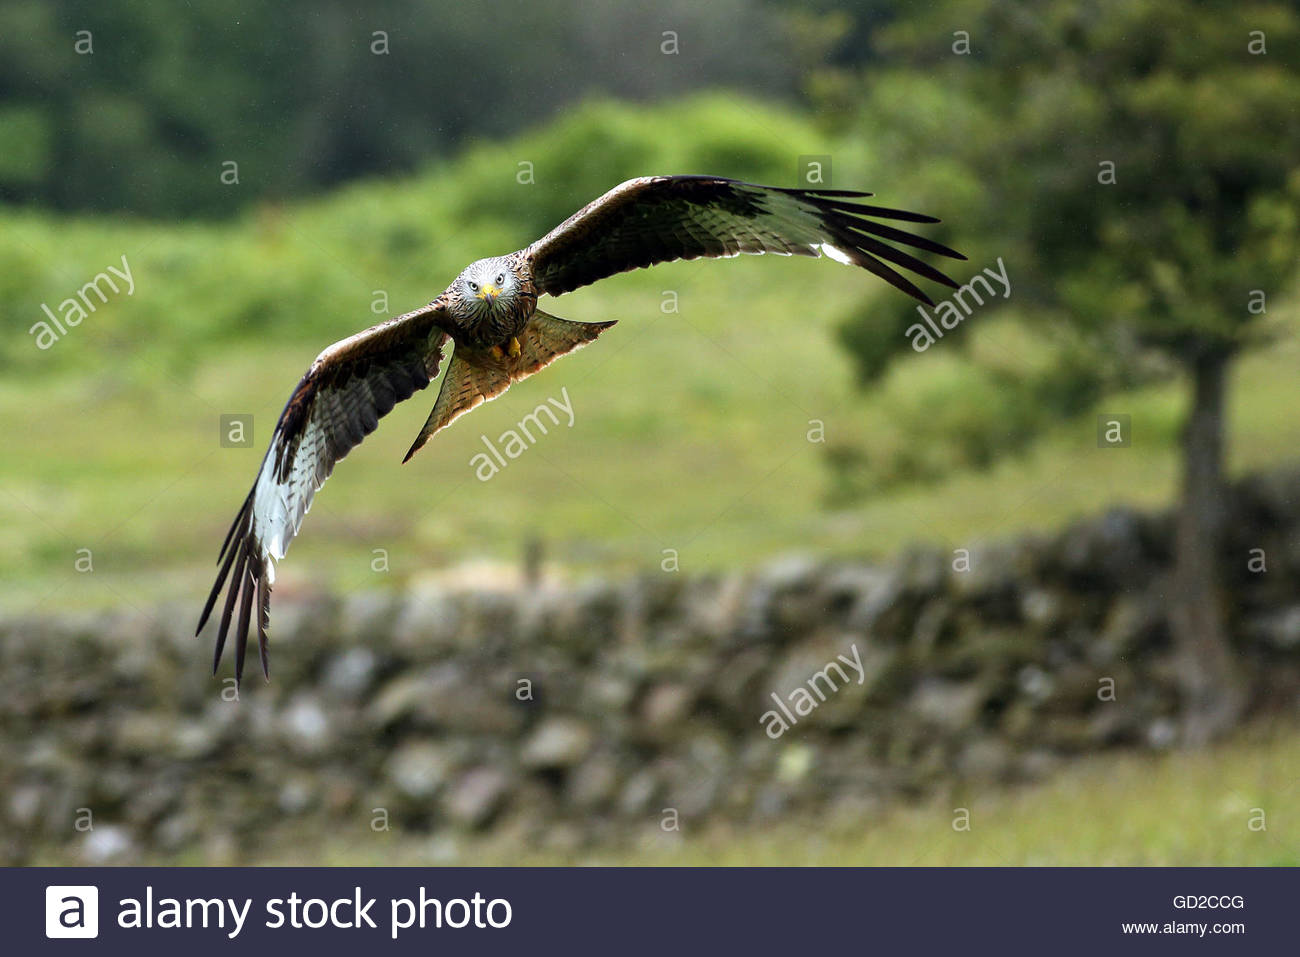 A Red kite - bird of prey in flight over a meadow. - Stock Image